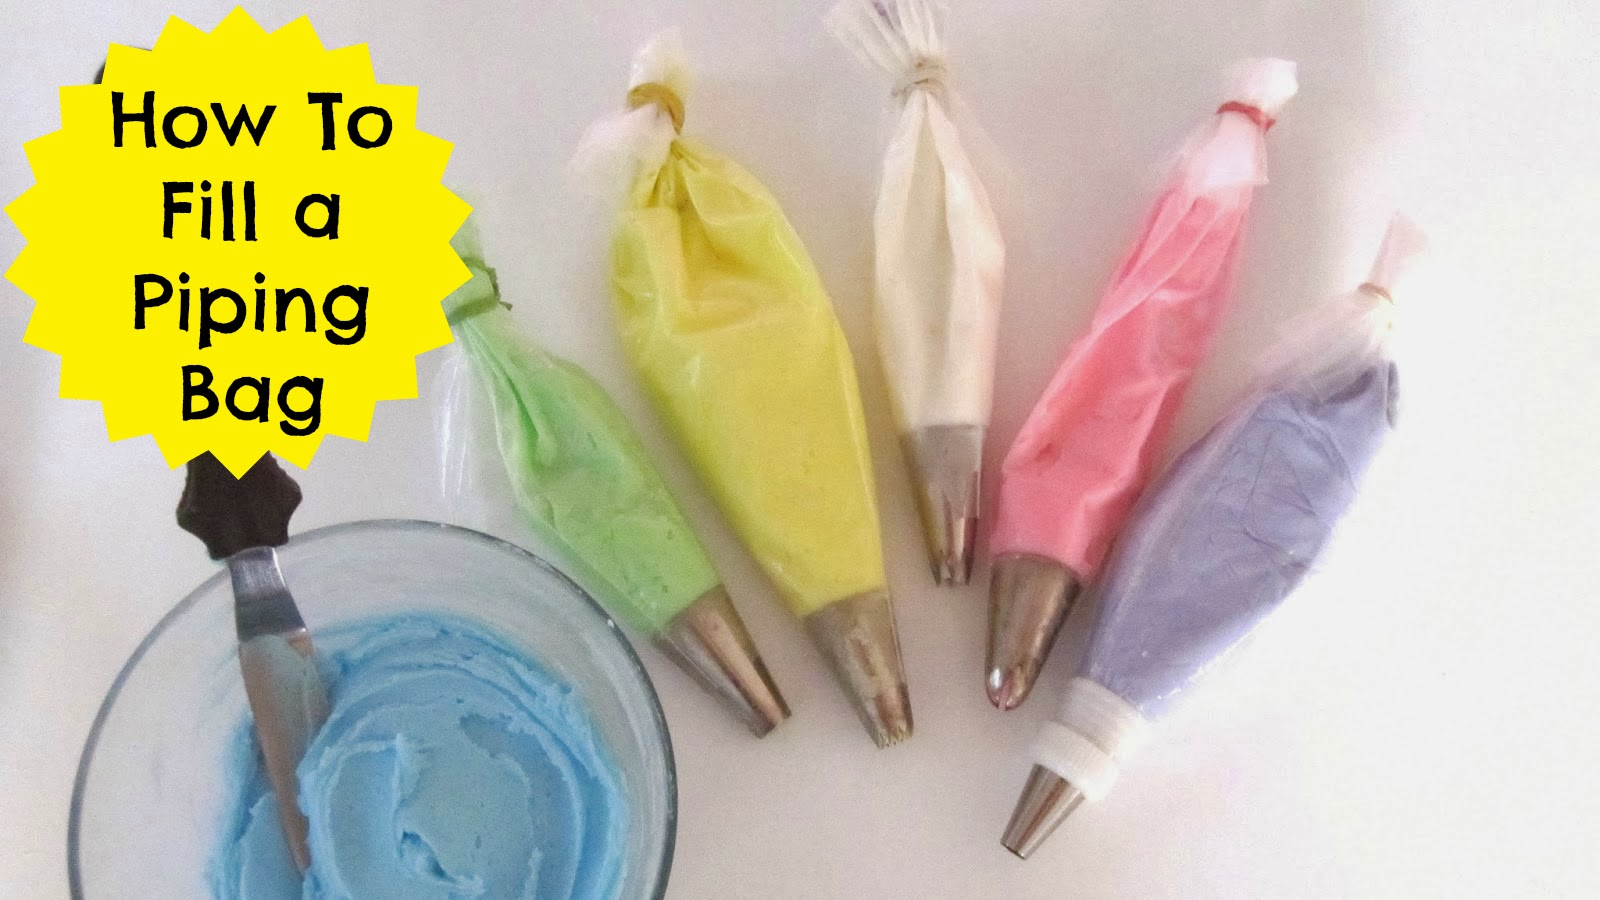 I Show You Some Quick Easy Tips Tricks For How To Fill Your Piping Bag With Frosting Fillings Or Decorators Icing Easily And Without The Mess